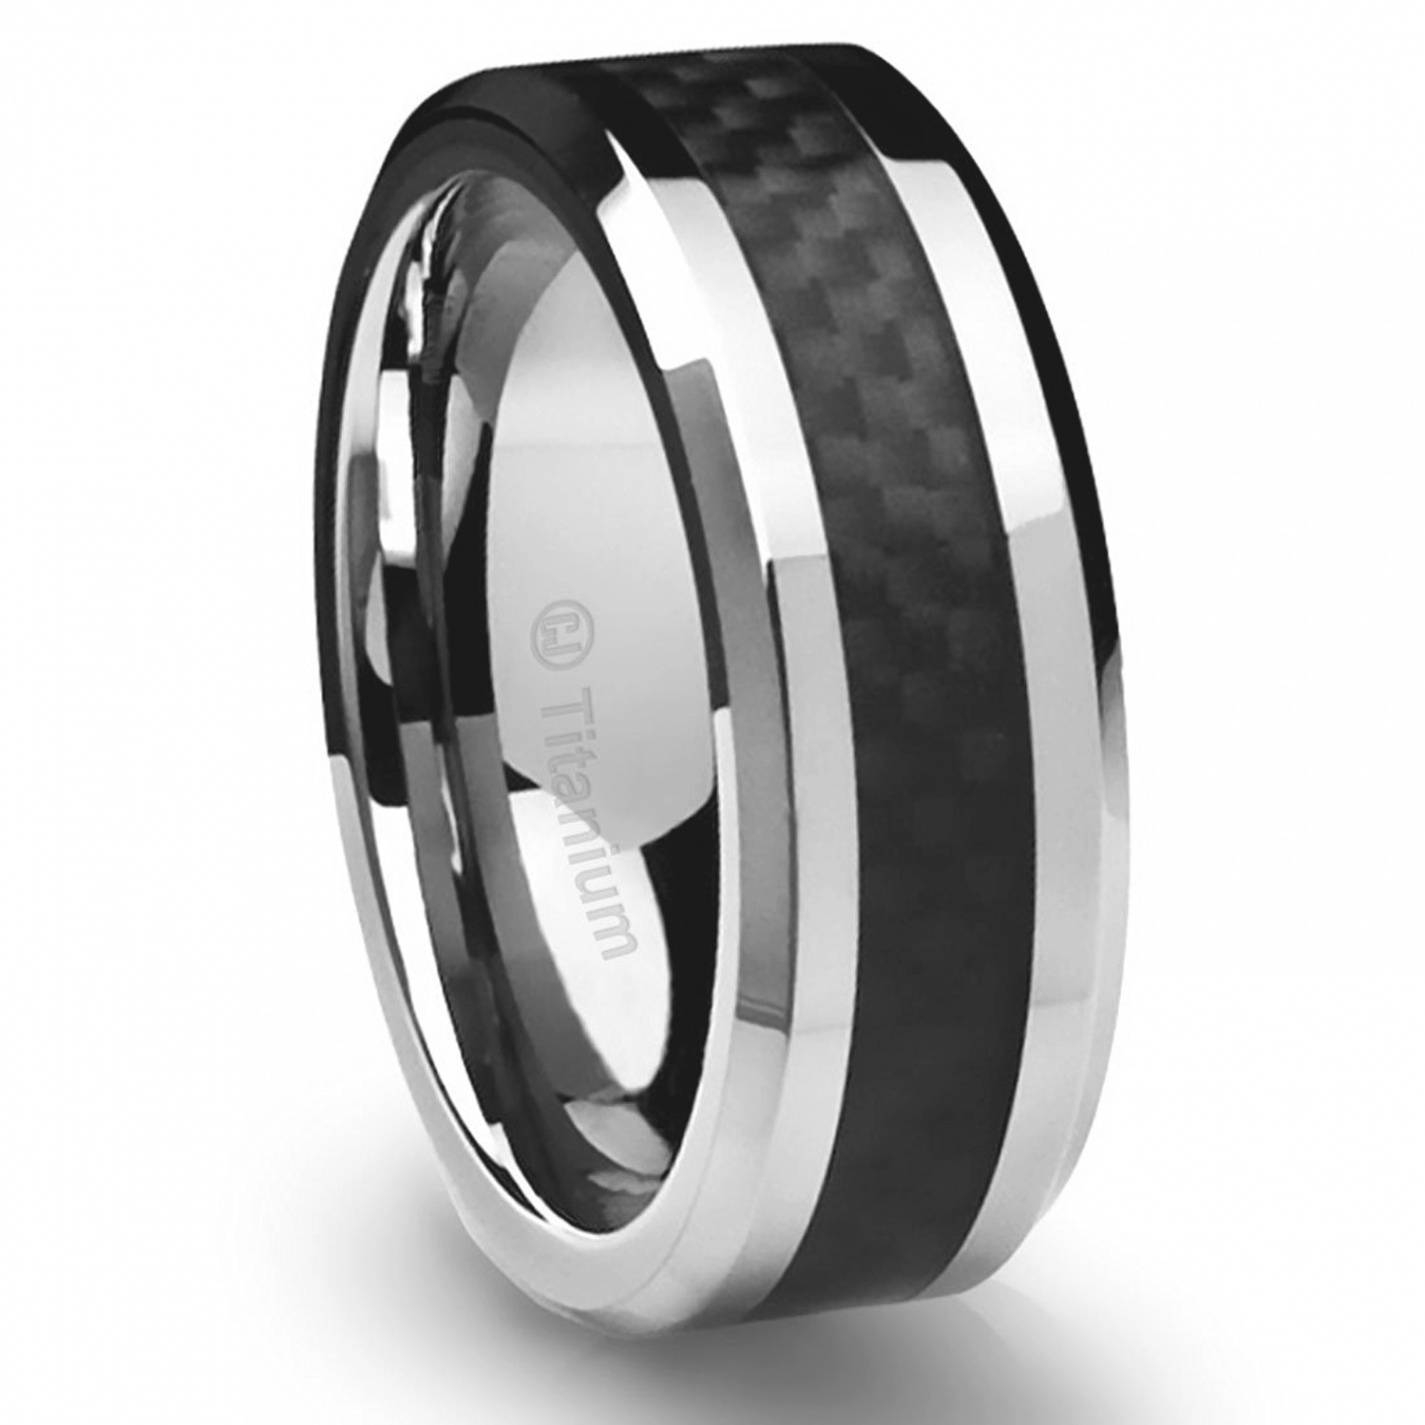 Exquisite Ideas Wedding Rings For Mechanics Tungsten Carbide Within Wedding Bands For Mechanics (View 9 of 15)